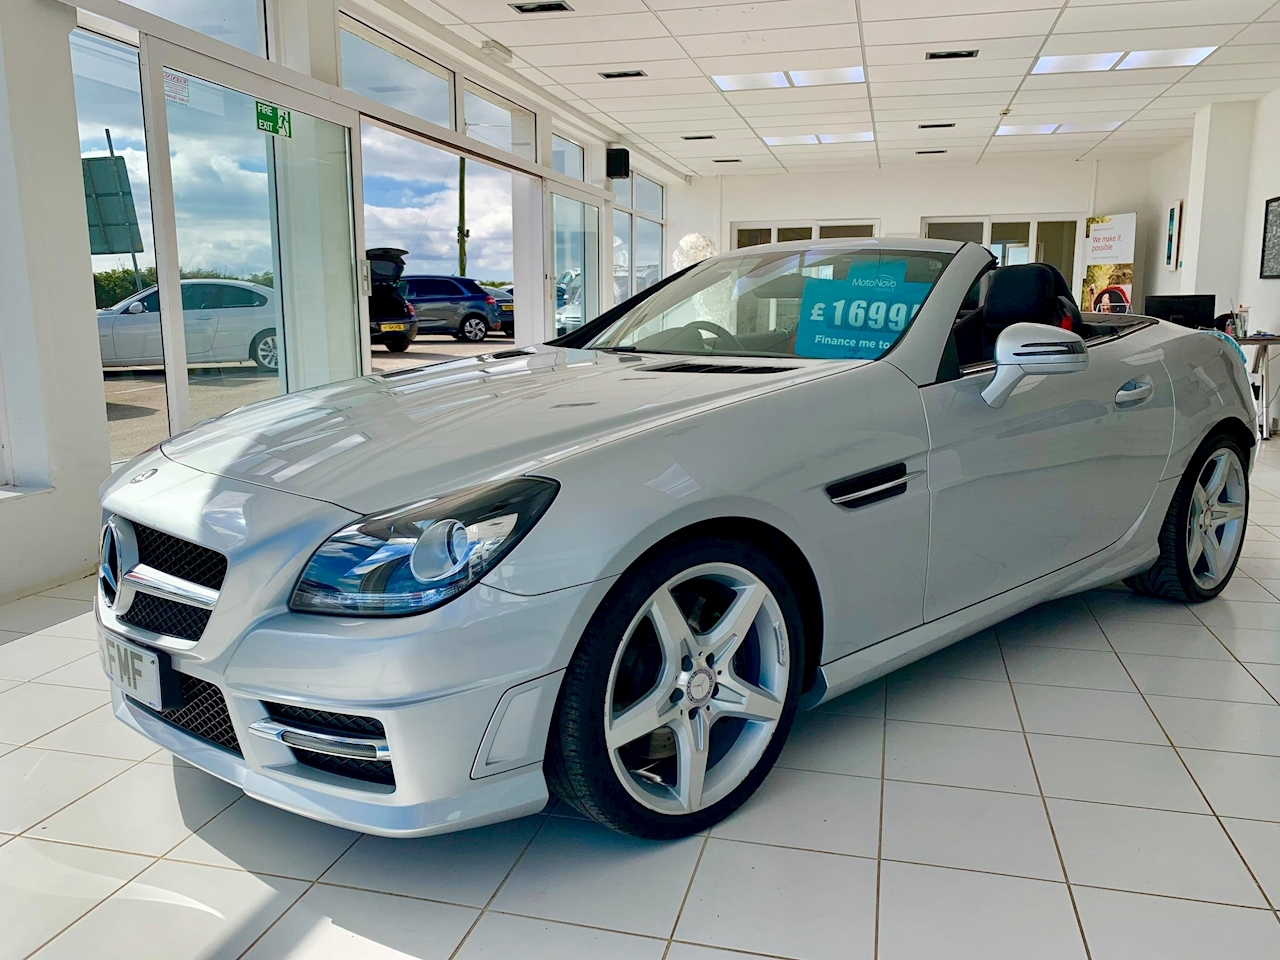 Mercedes-Benz Slk Slk250 Cdi Blueefficiency Amg Sport Convertible 2.1 Automatic Diesel